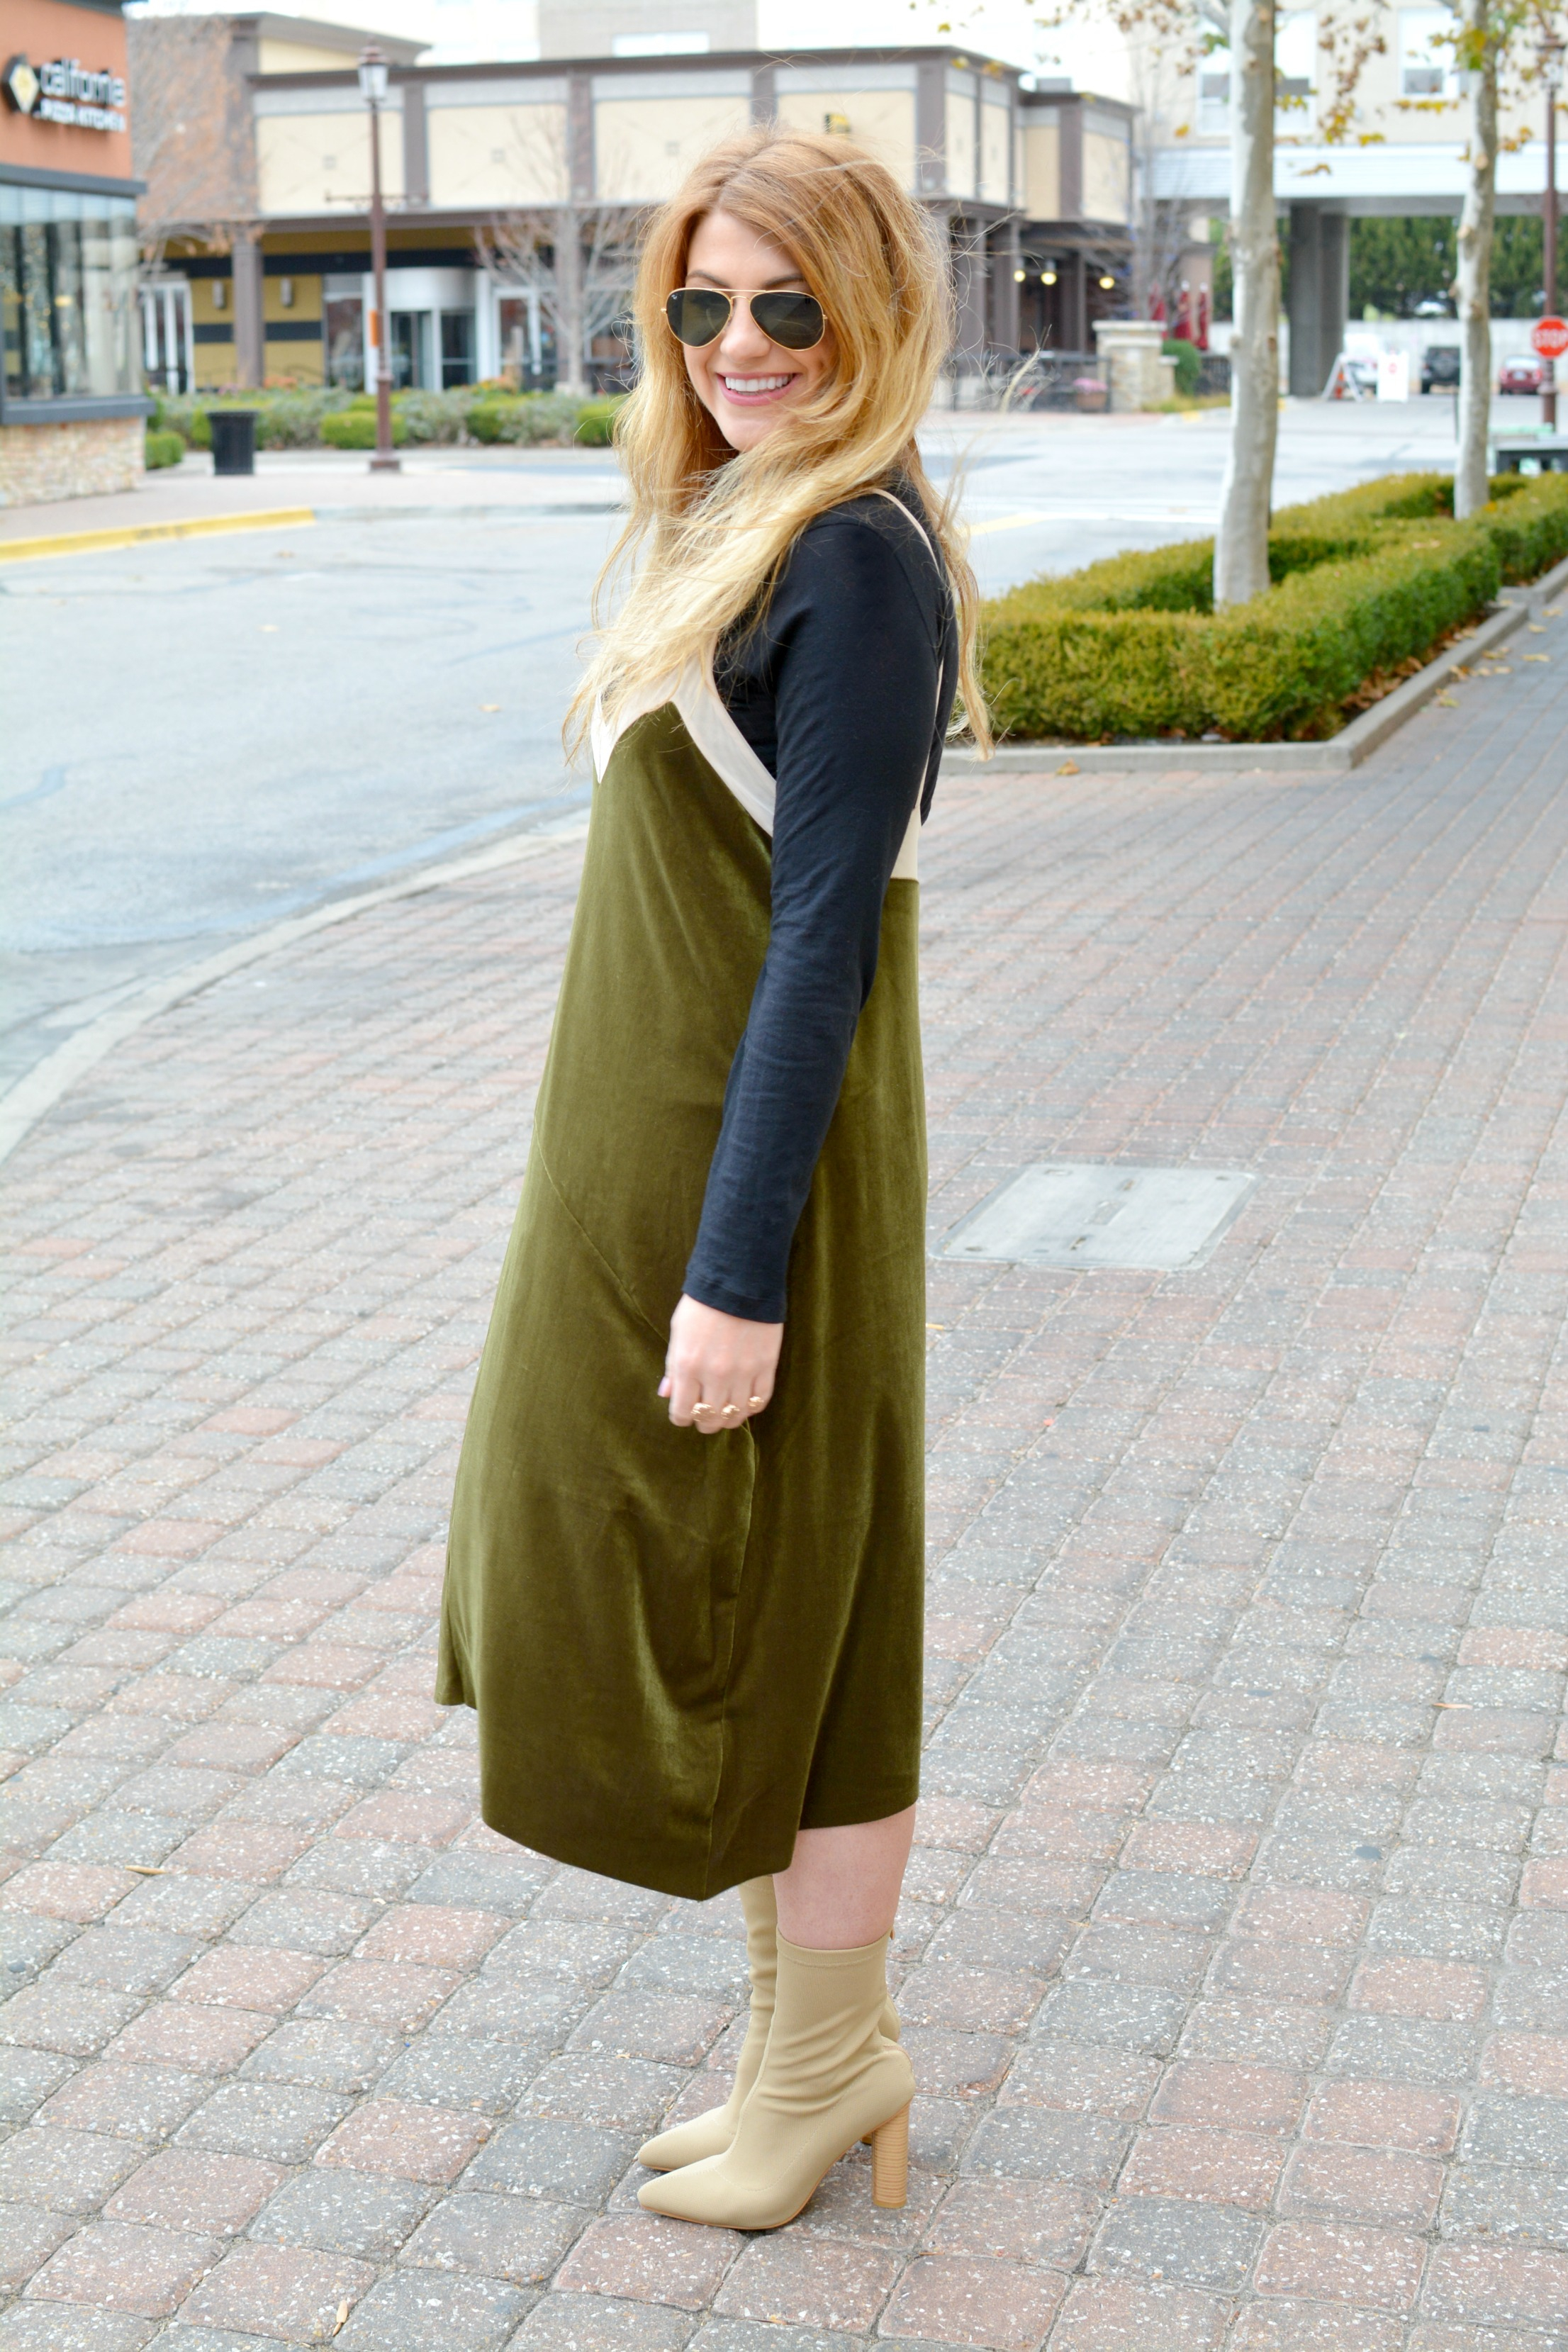 Ashley from LSR in a green velvet dress and sock boots